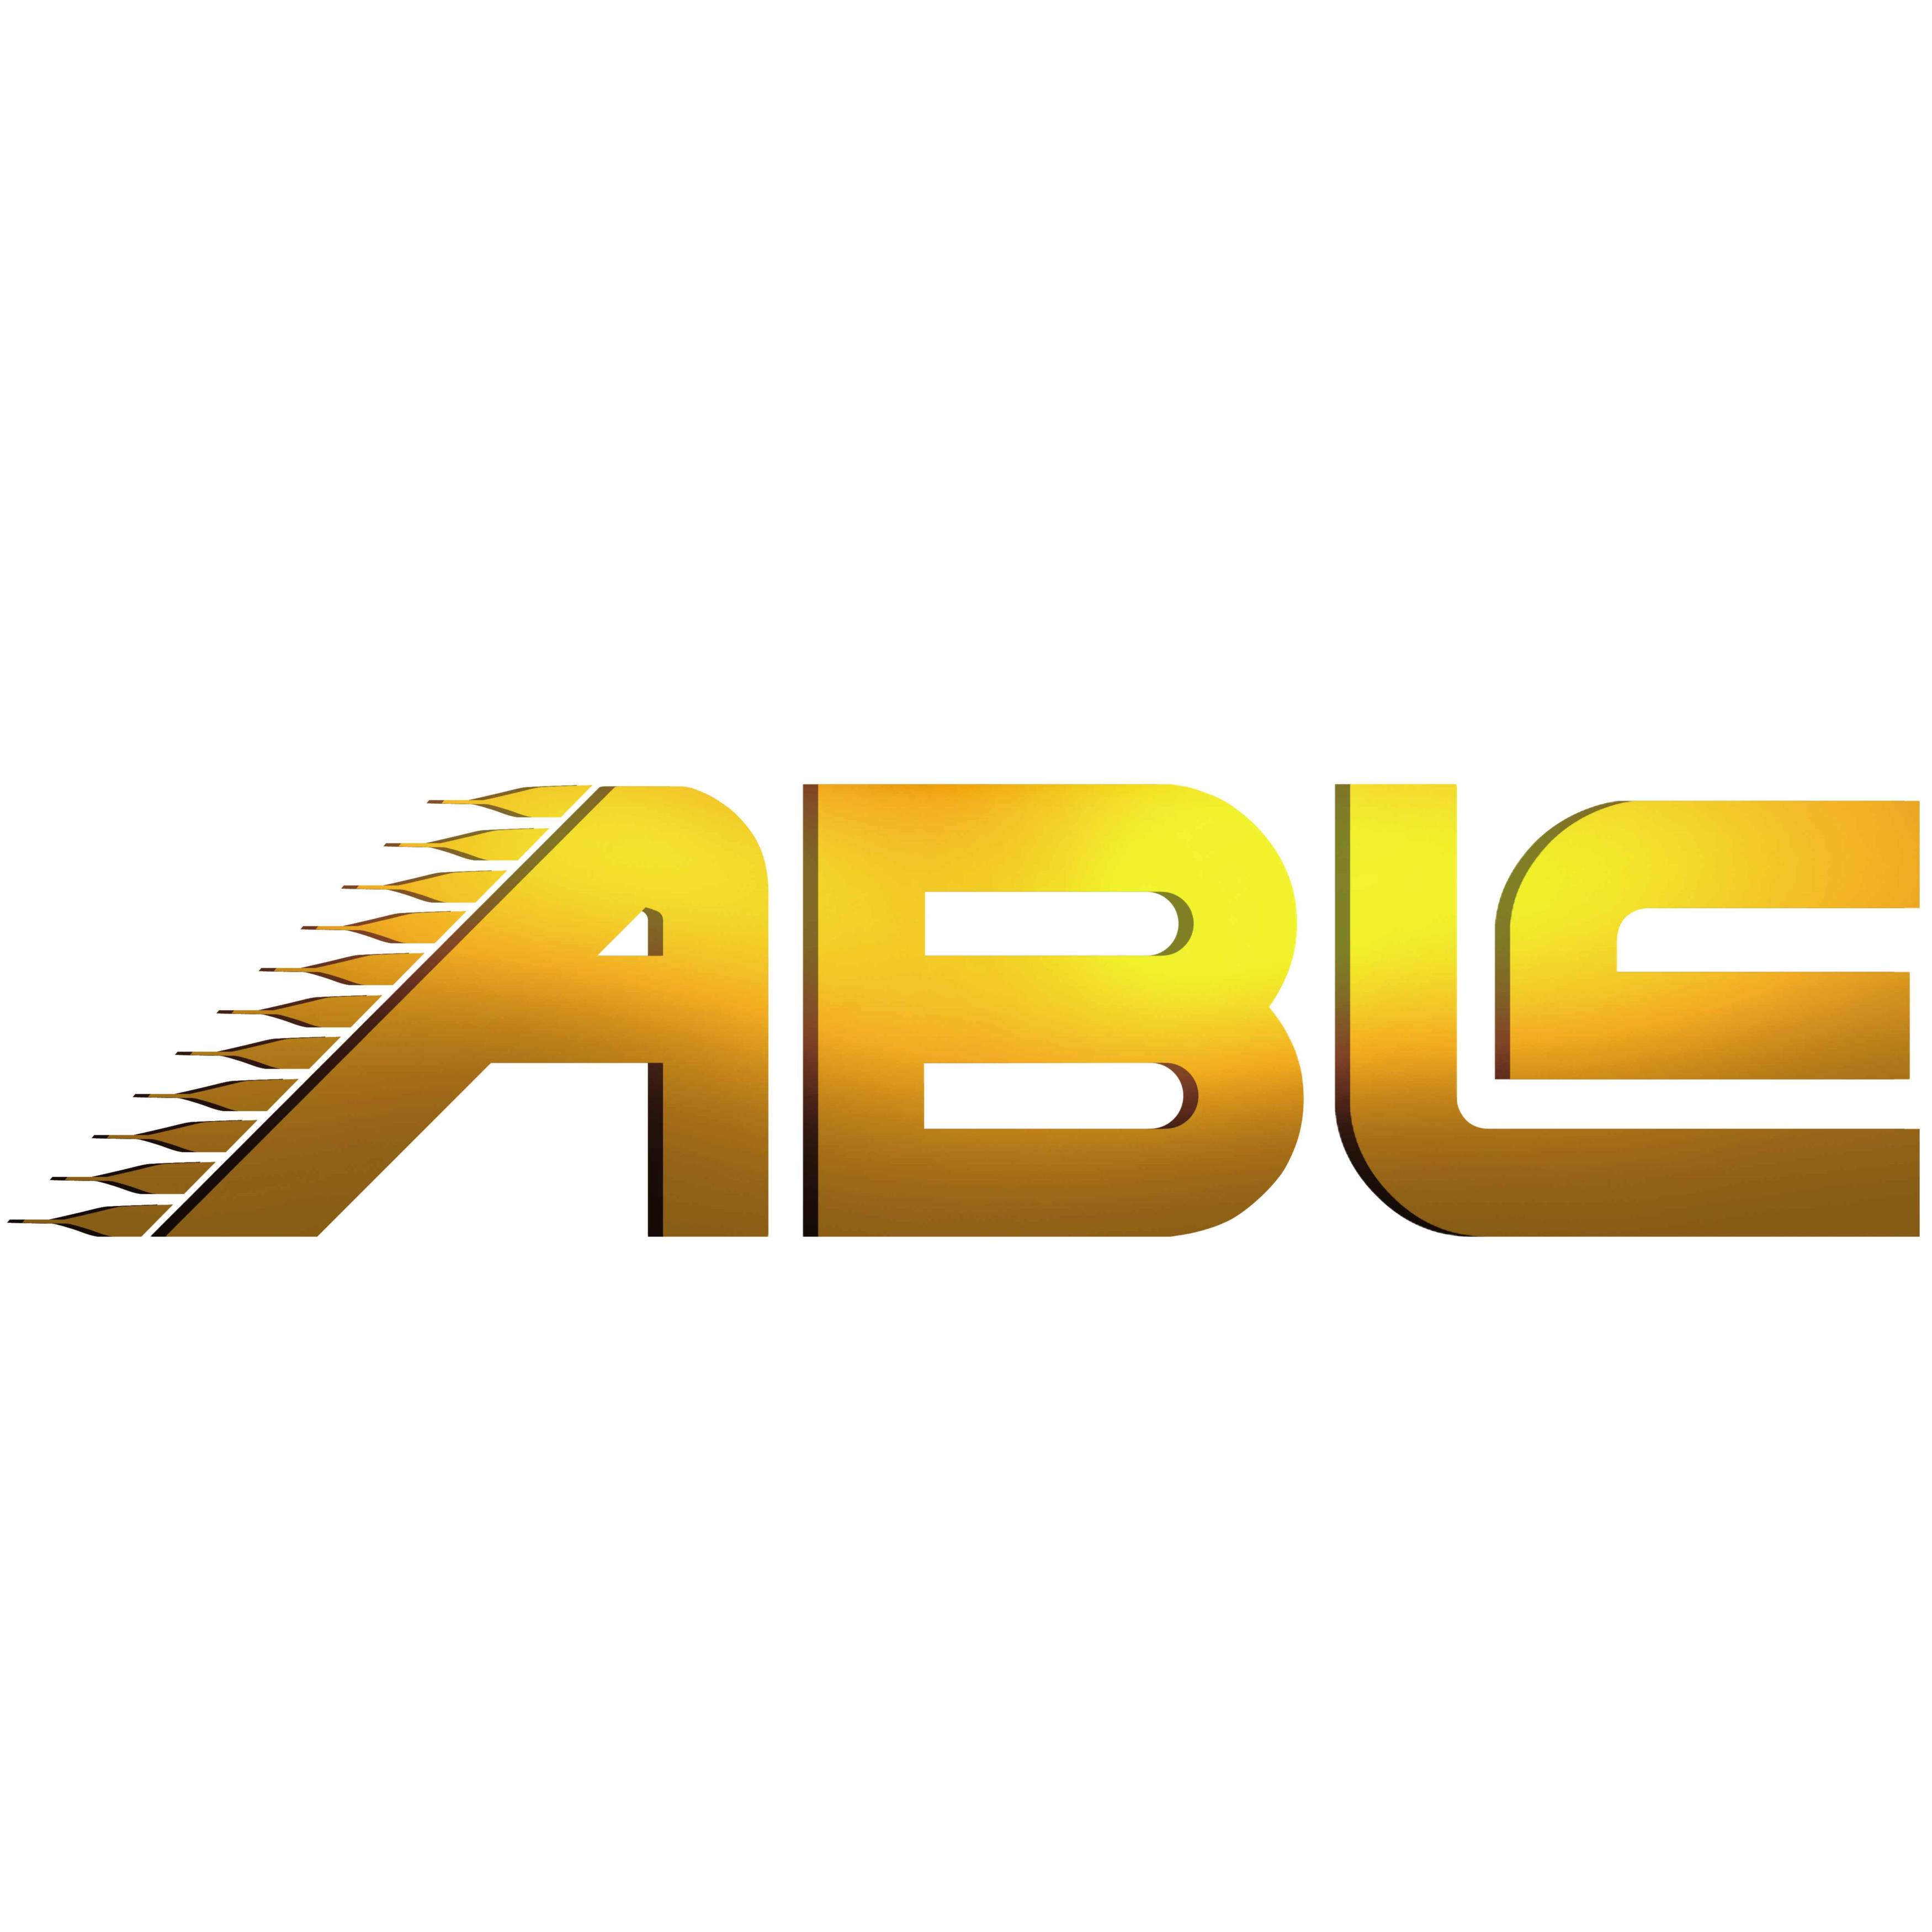 Ableled Lighting Co., Limited